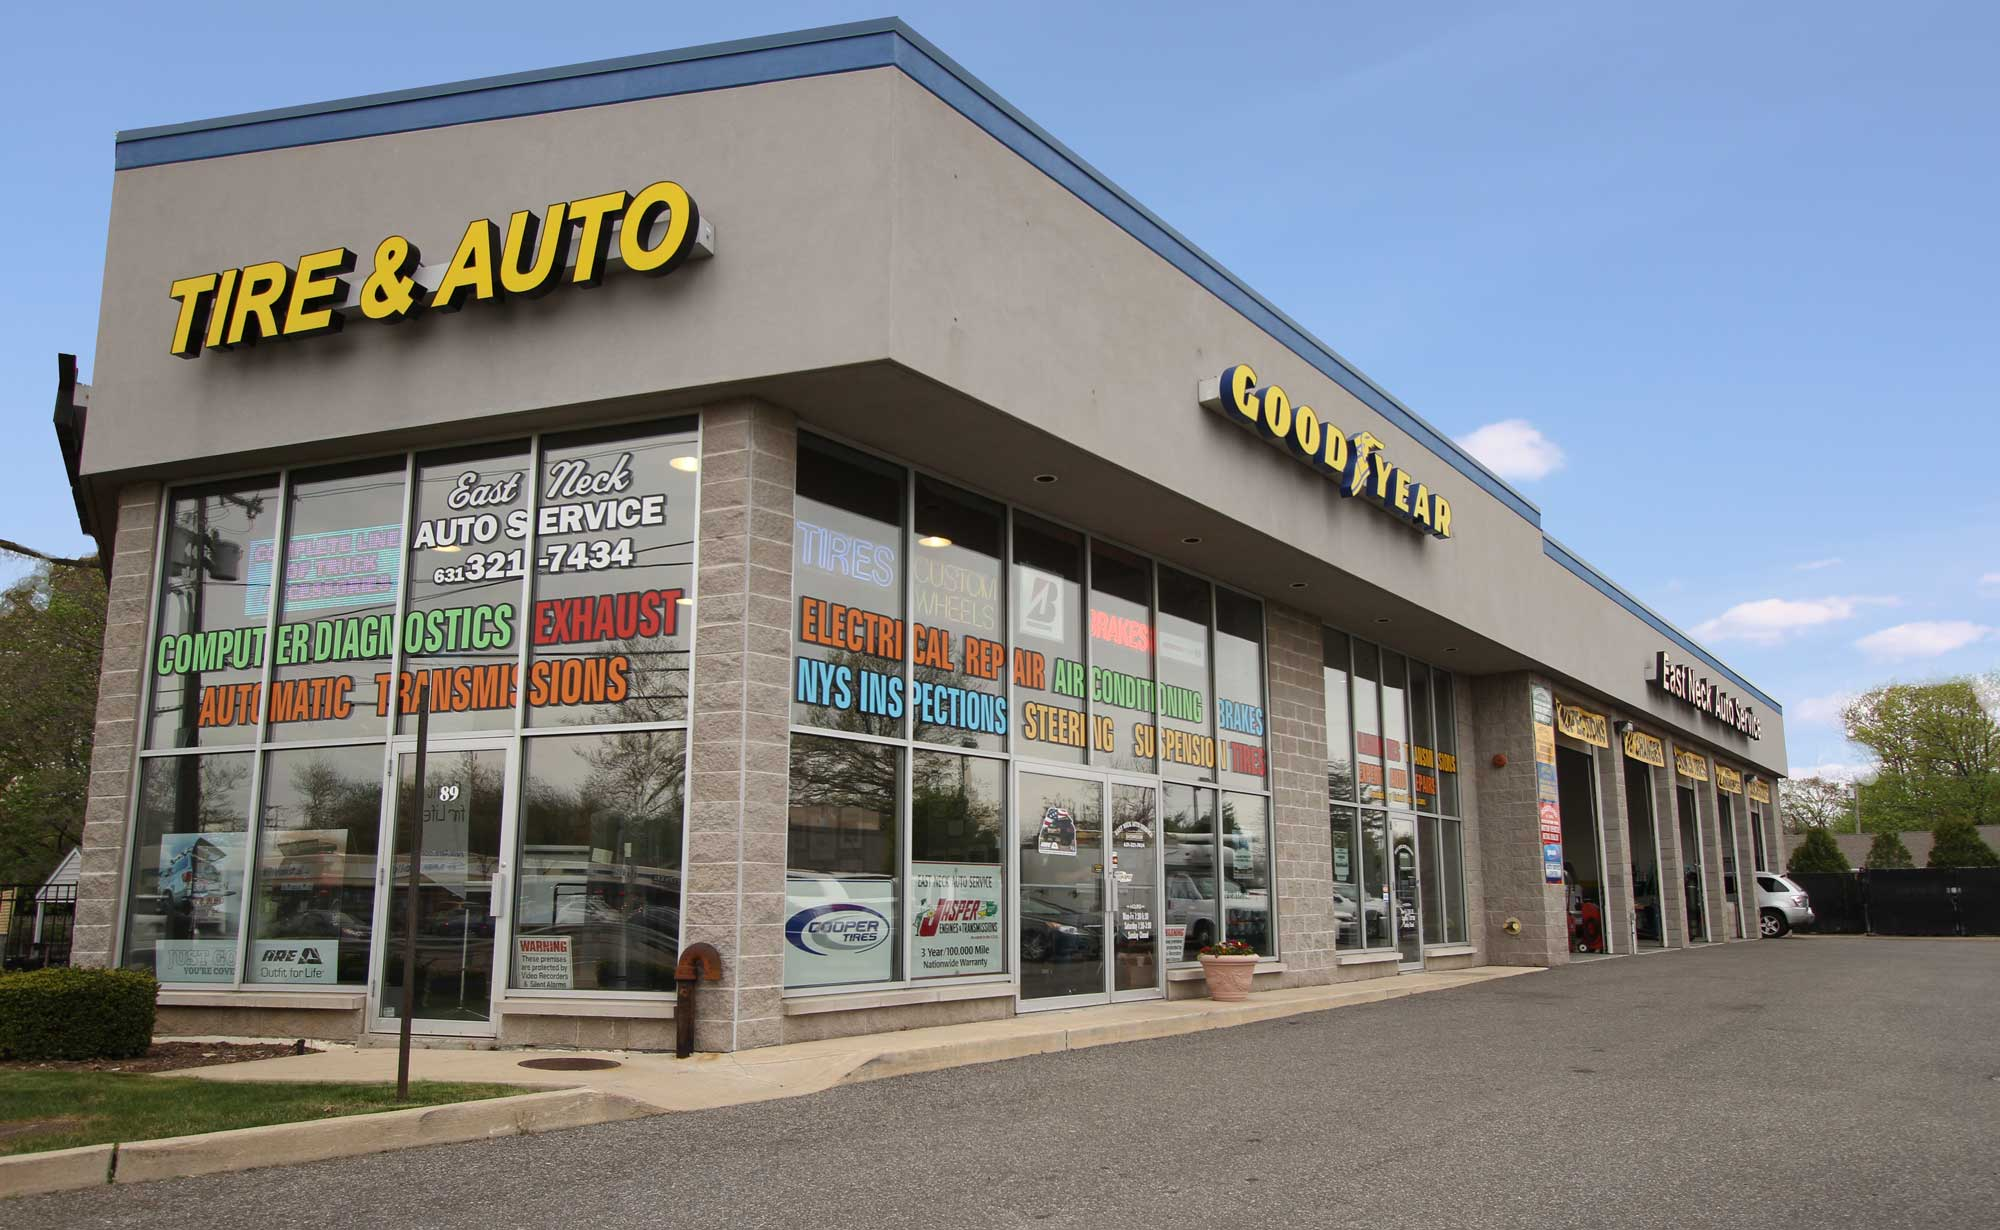 East Neck Auto Service, Auto Repair